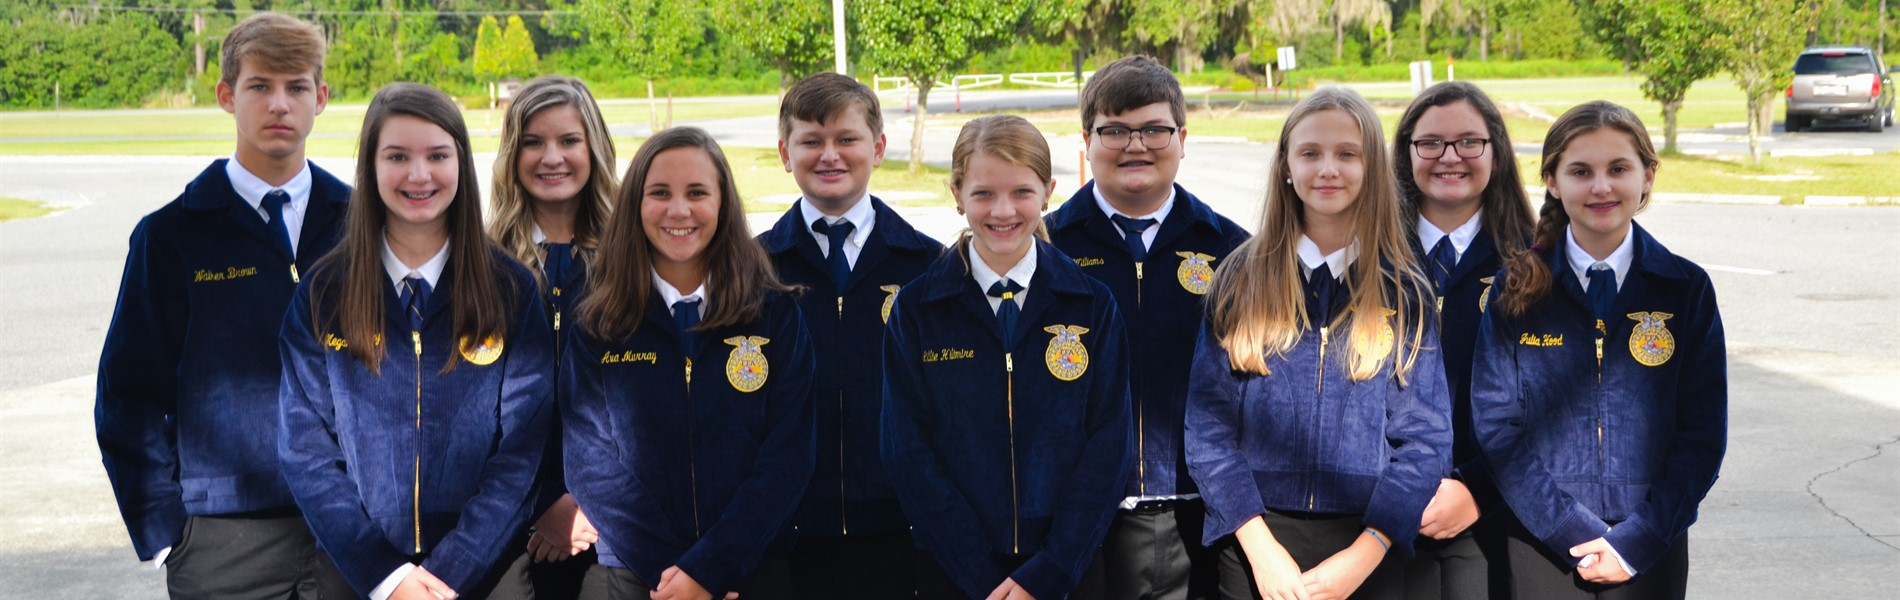 FFA Officers 2018-2019